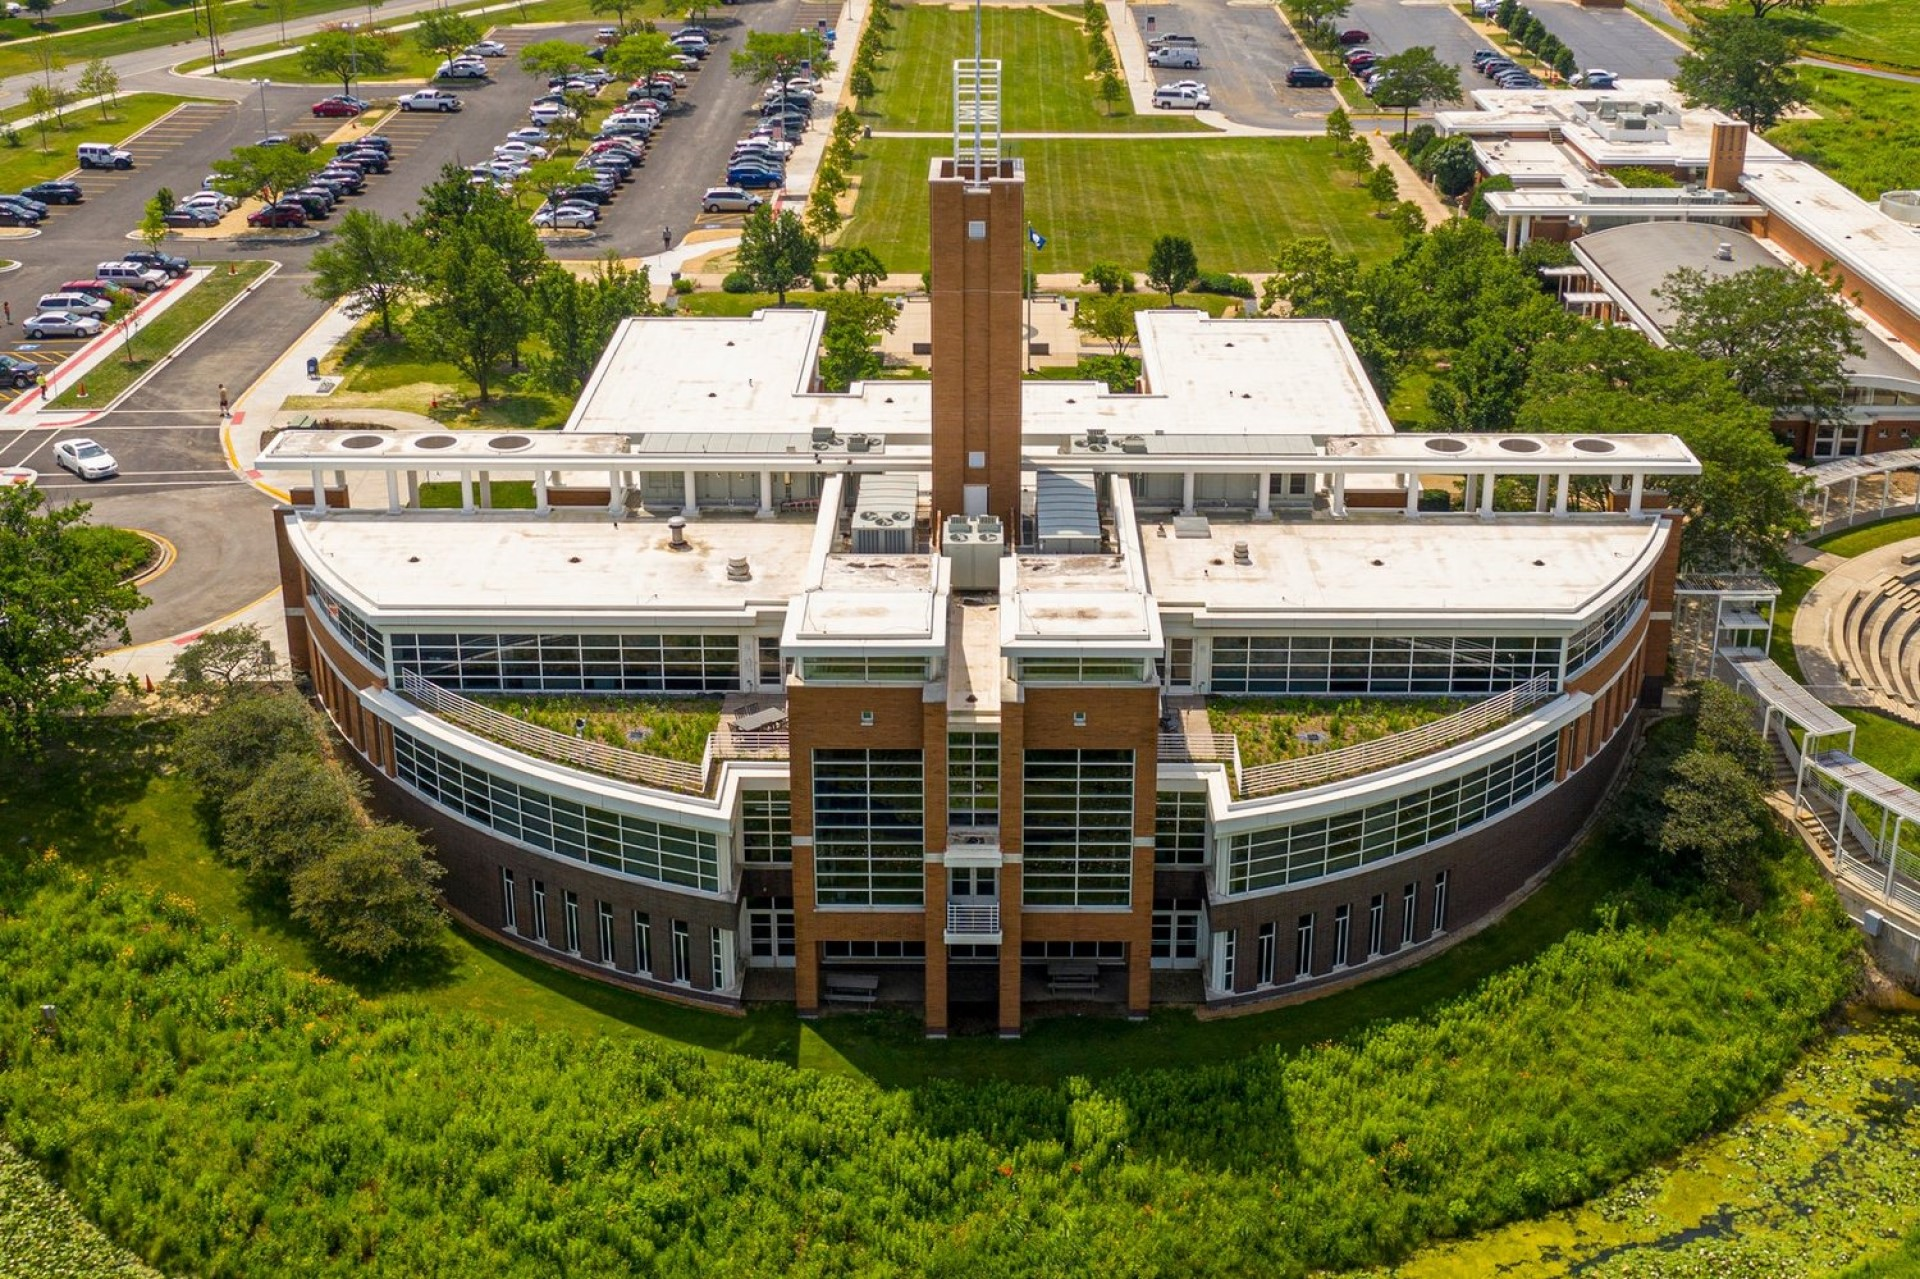 Village of Orland Park Green Roof: One Year After the Build